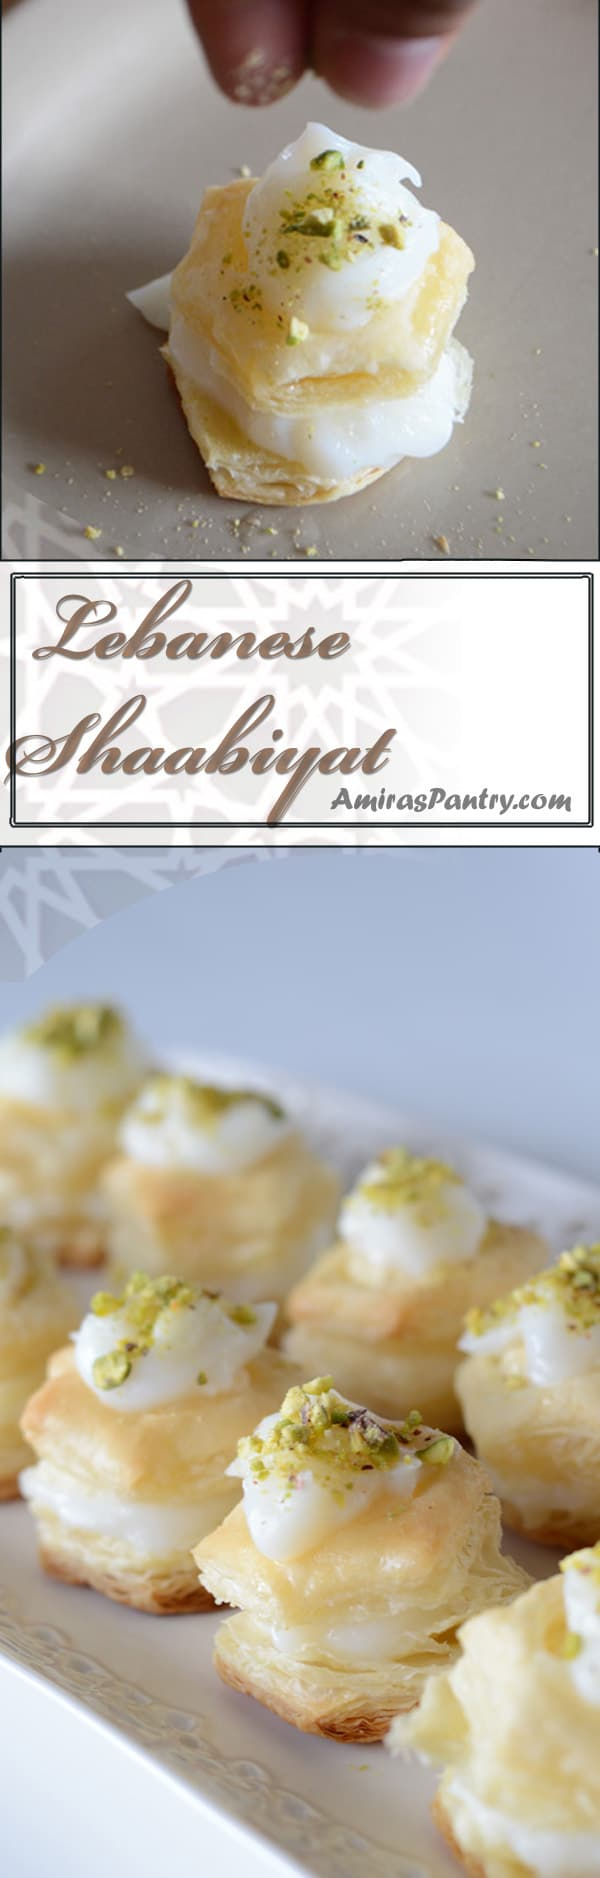 Delicate, buttery, creamy and sweet, Shaabiyat is a Lebanese treat made easier with the use of puff pastry.